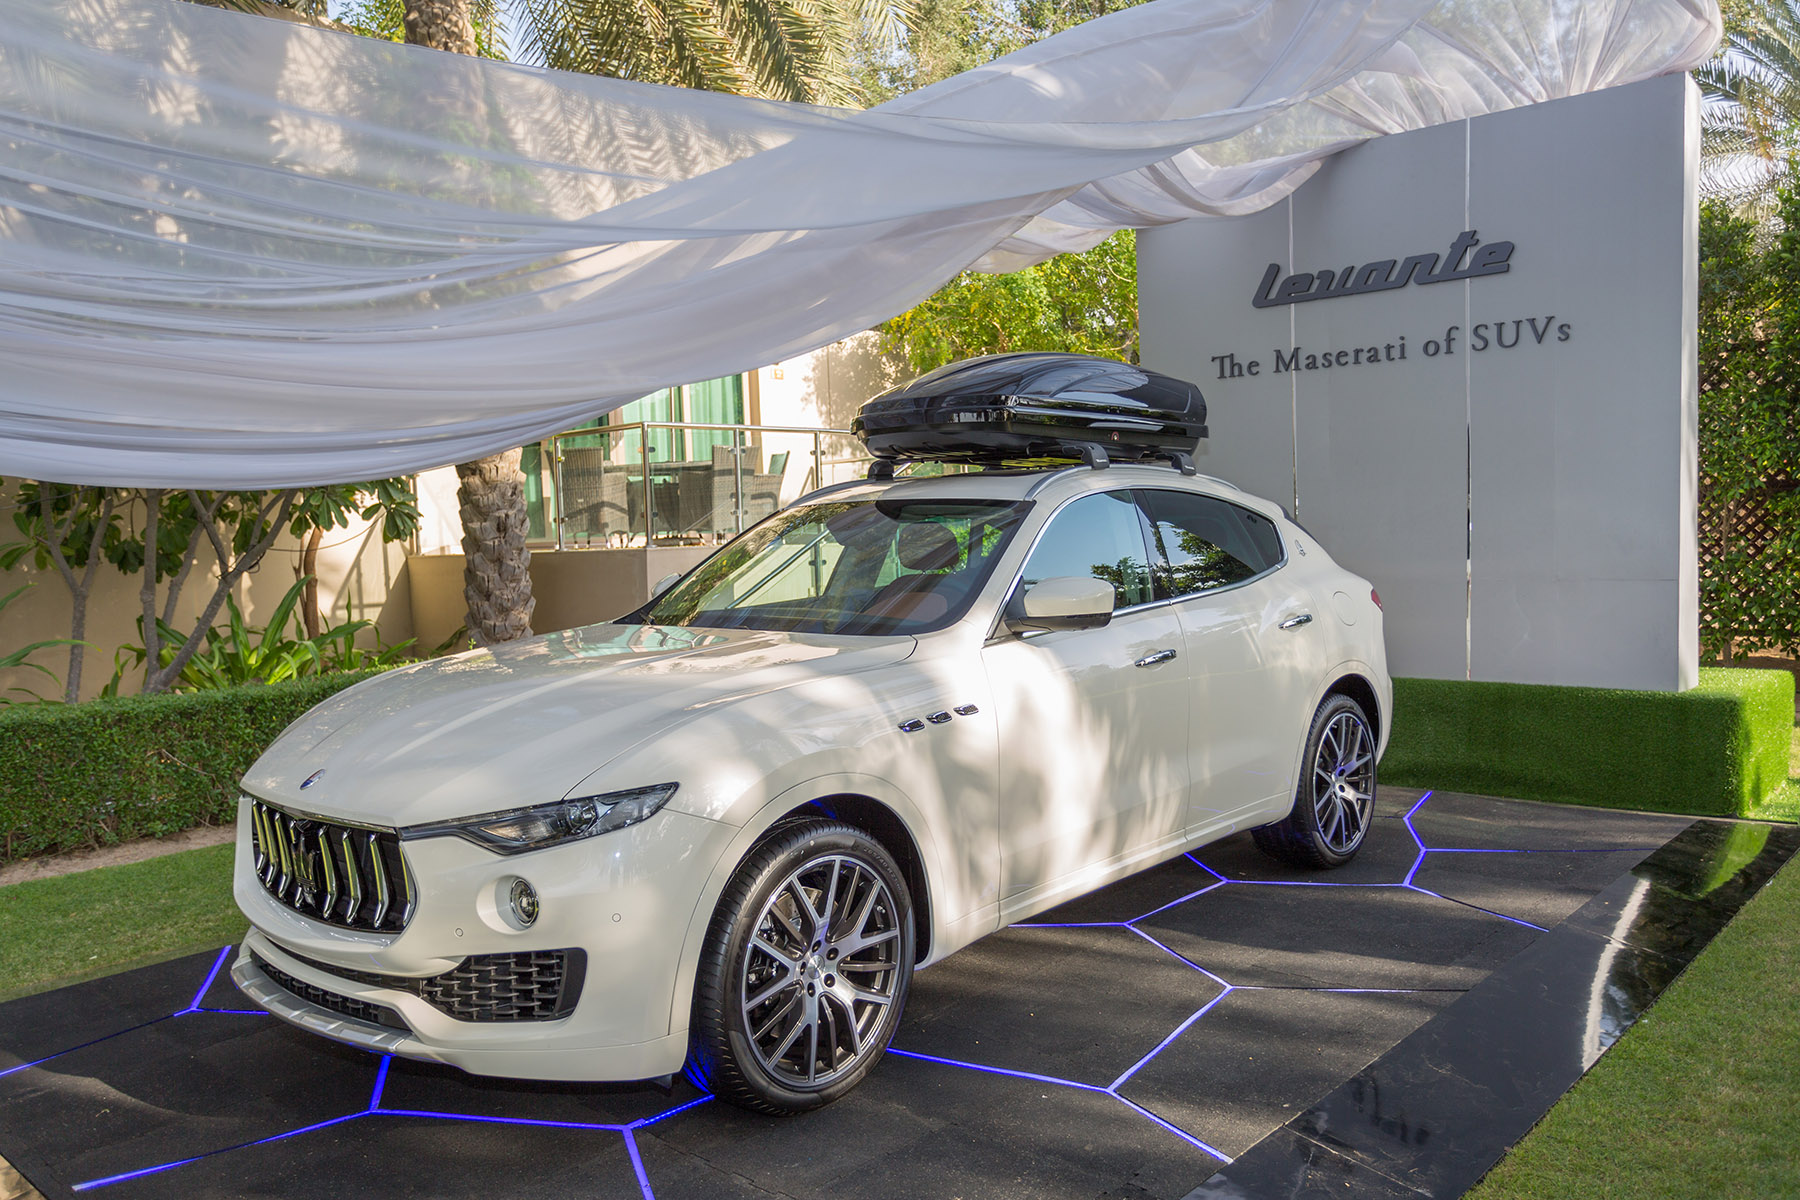 Maserati Levante SUV at the polo event by Loesje Kessels Fashion Photographer Dubai